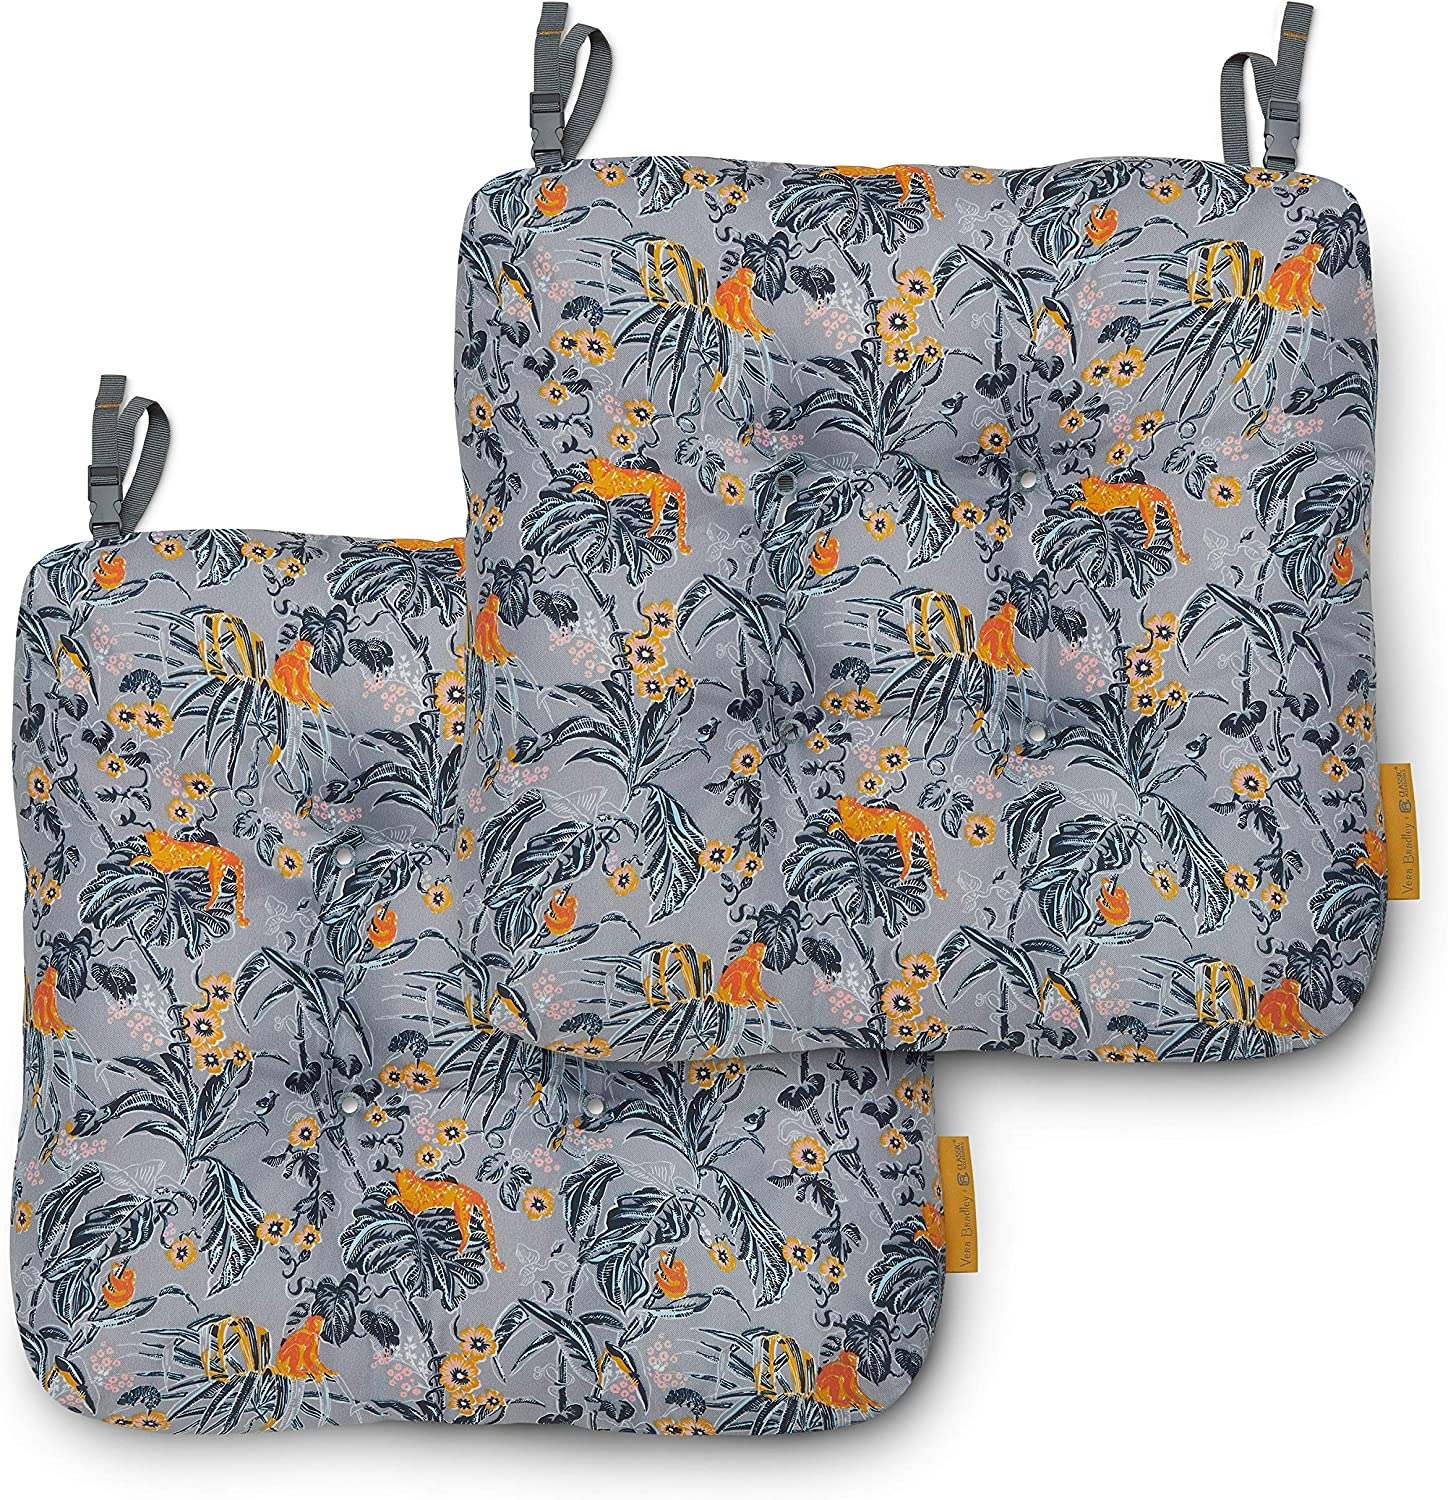 Vera Bradley by Classic Accessories Water-Resistant Patio Chair Cushions, 19 x 19 x 5 Inch, 2 Pack, Rain Forest Toile Gray/Gold